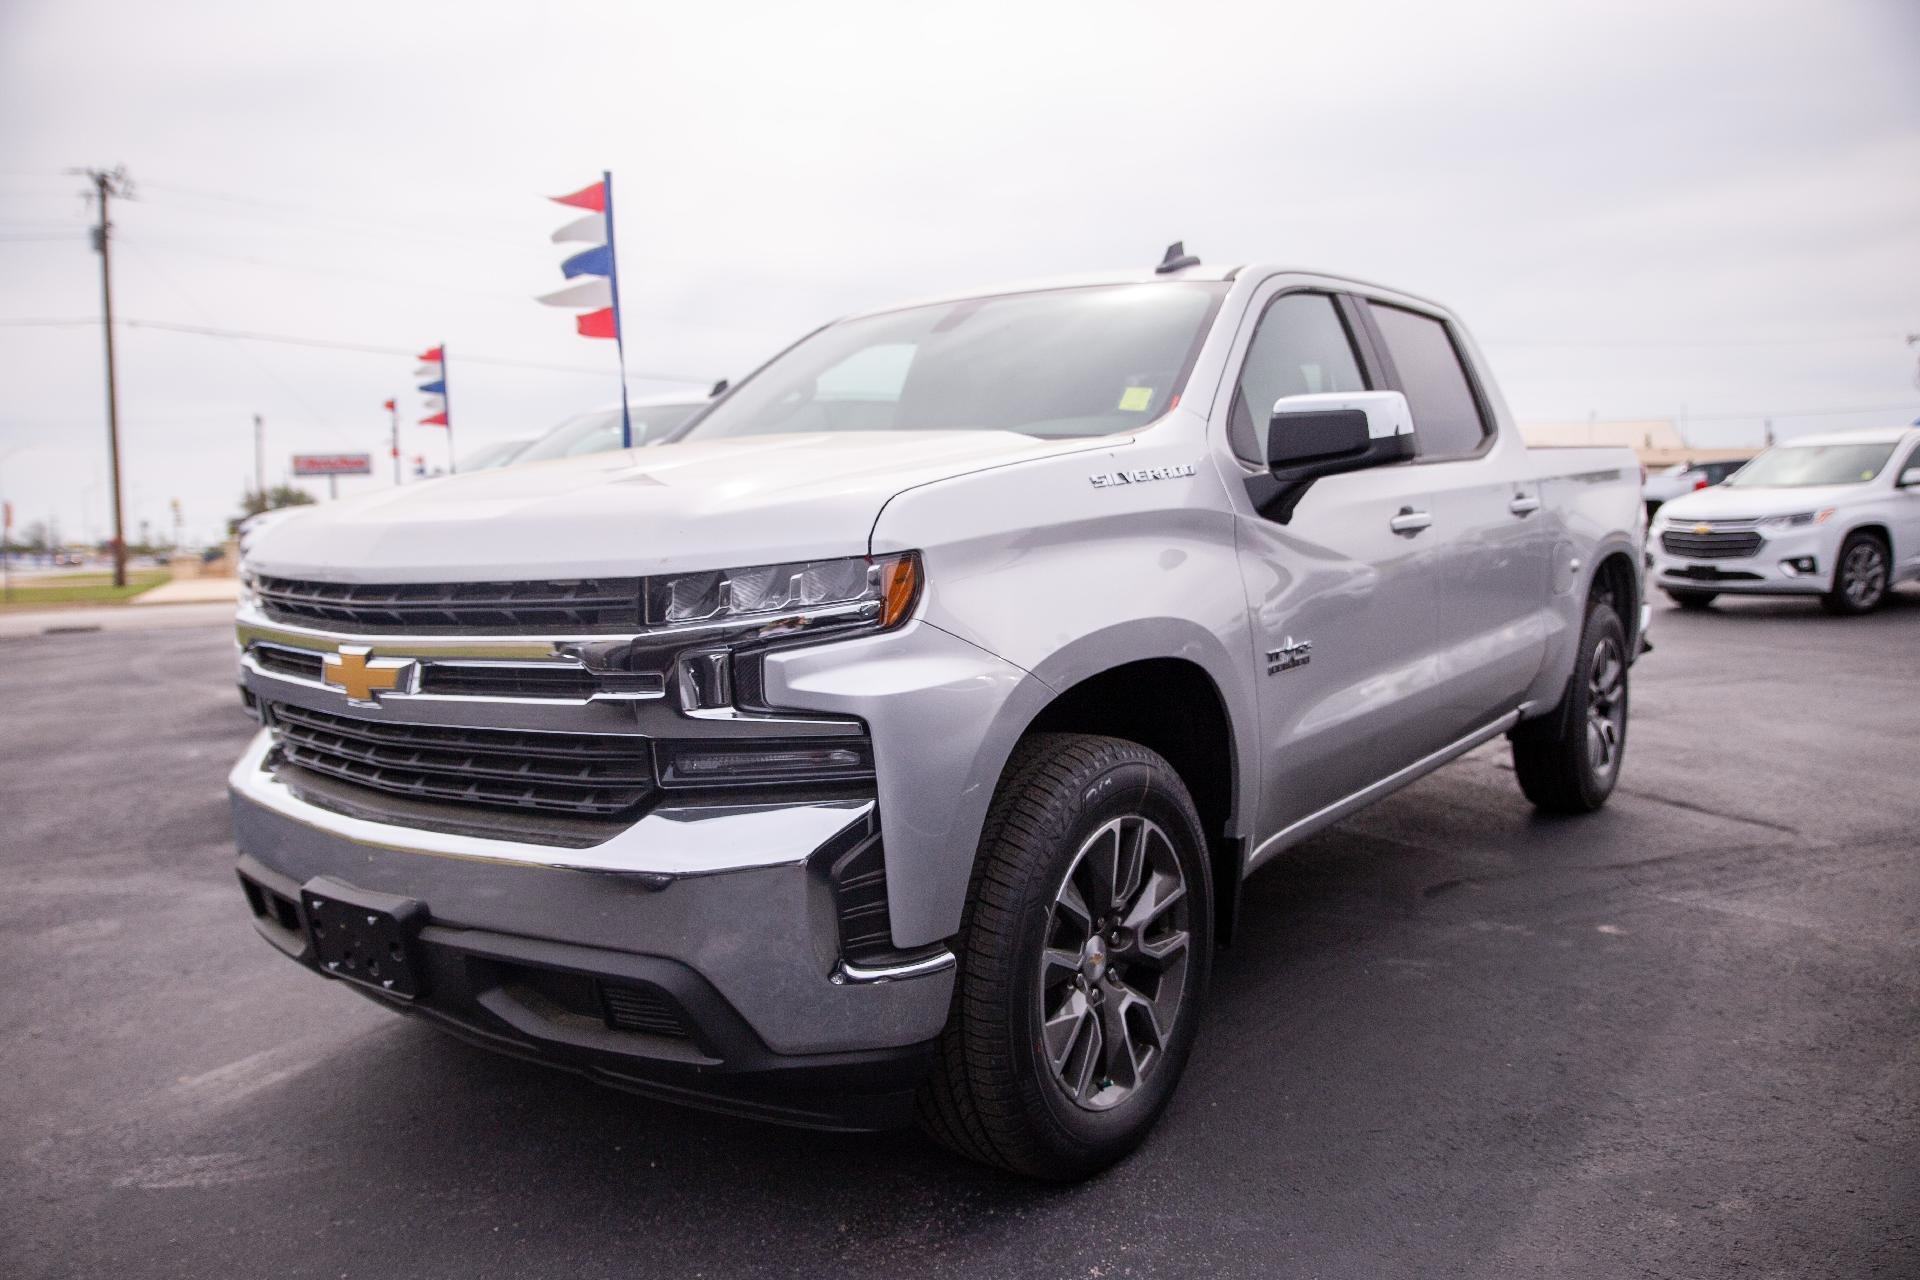 New 2019 Chevrolet-Colorado LT Colorado LT for sale $31,300 at M and V Leasing in Brooklyn NY 11223 1